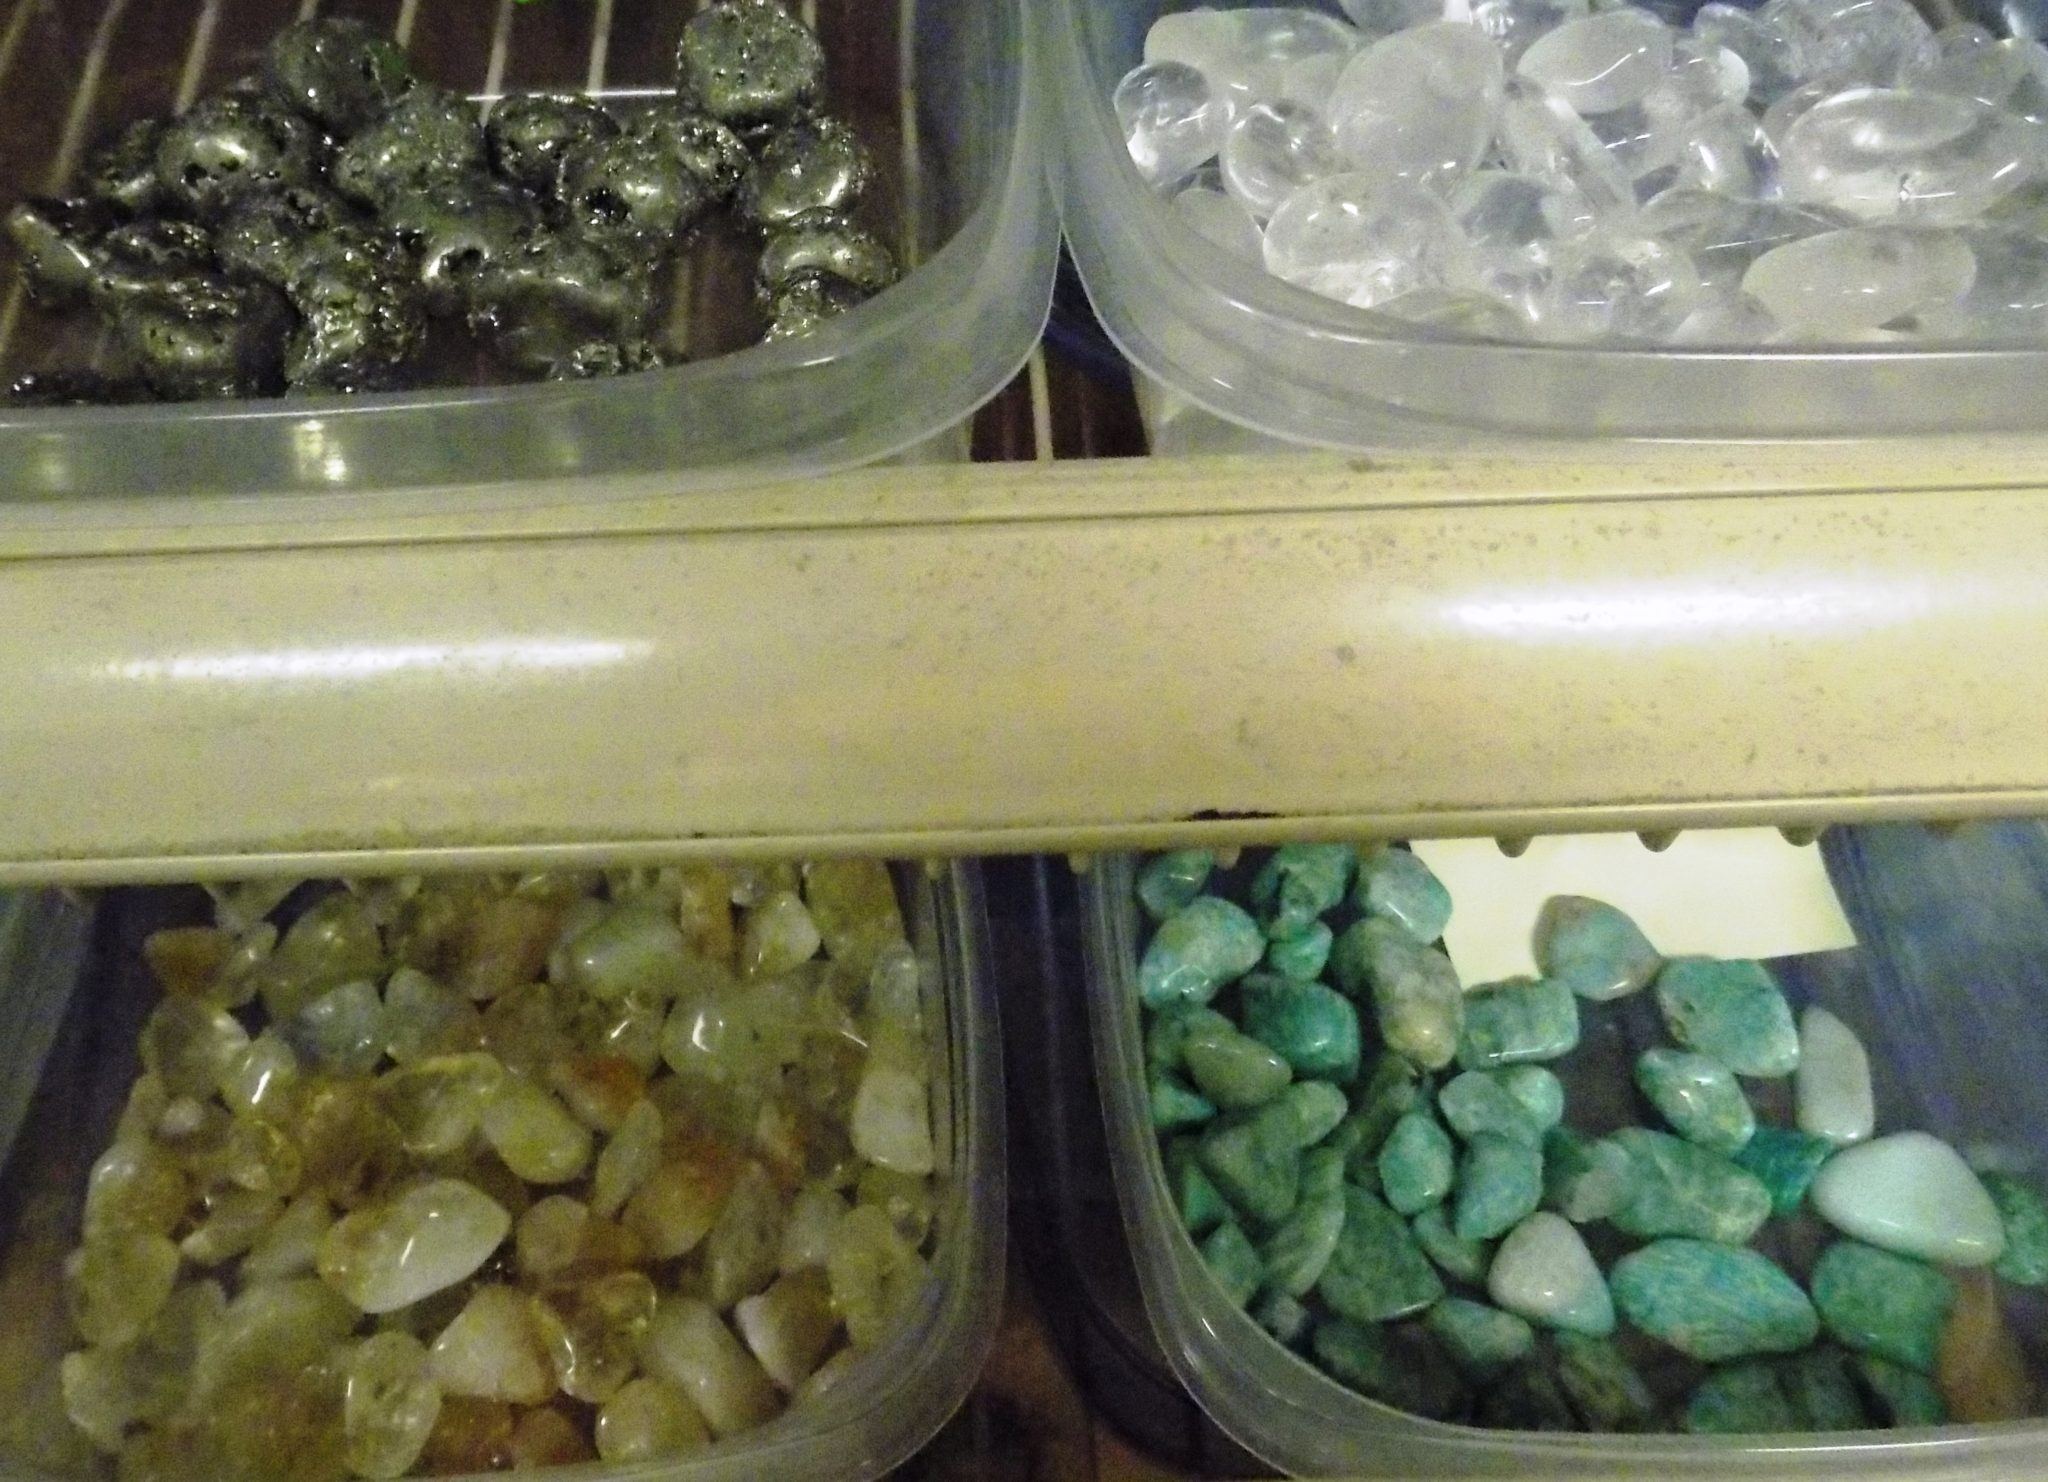 More Rocks and Stones